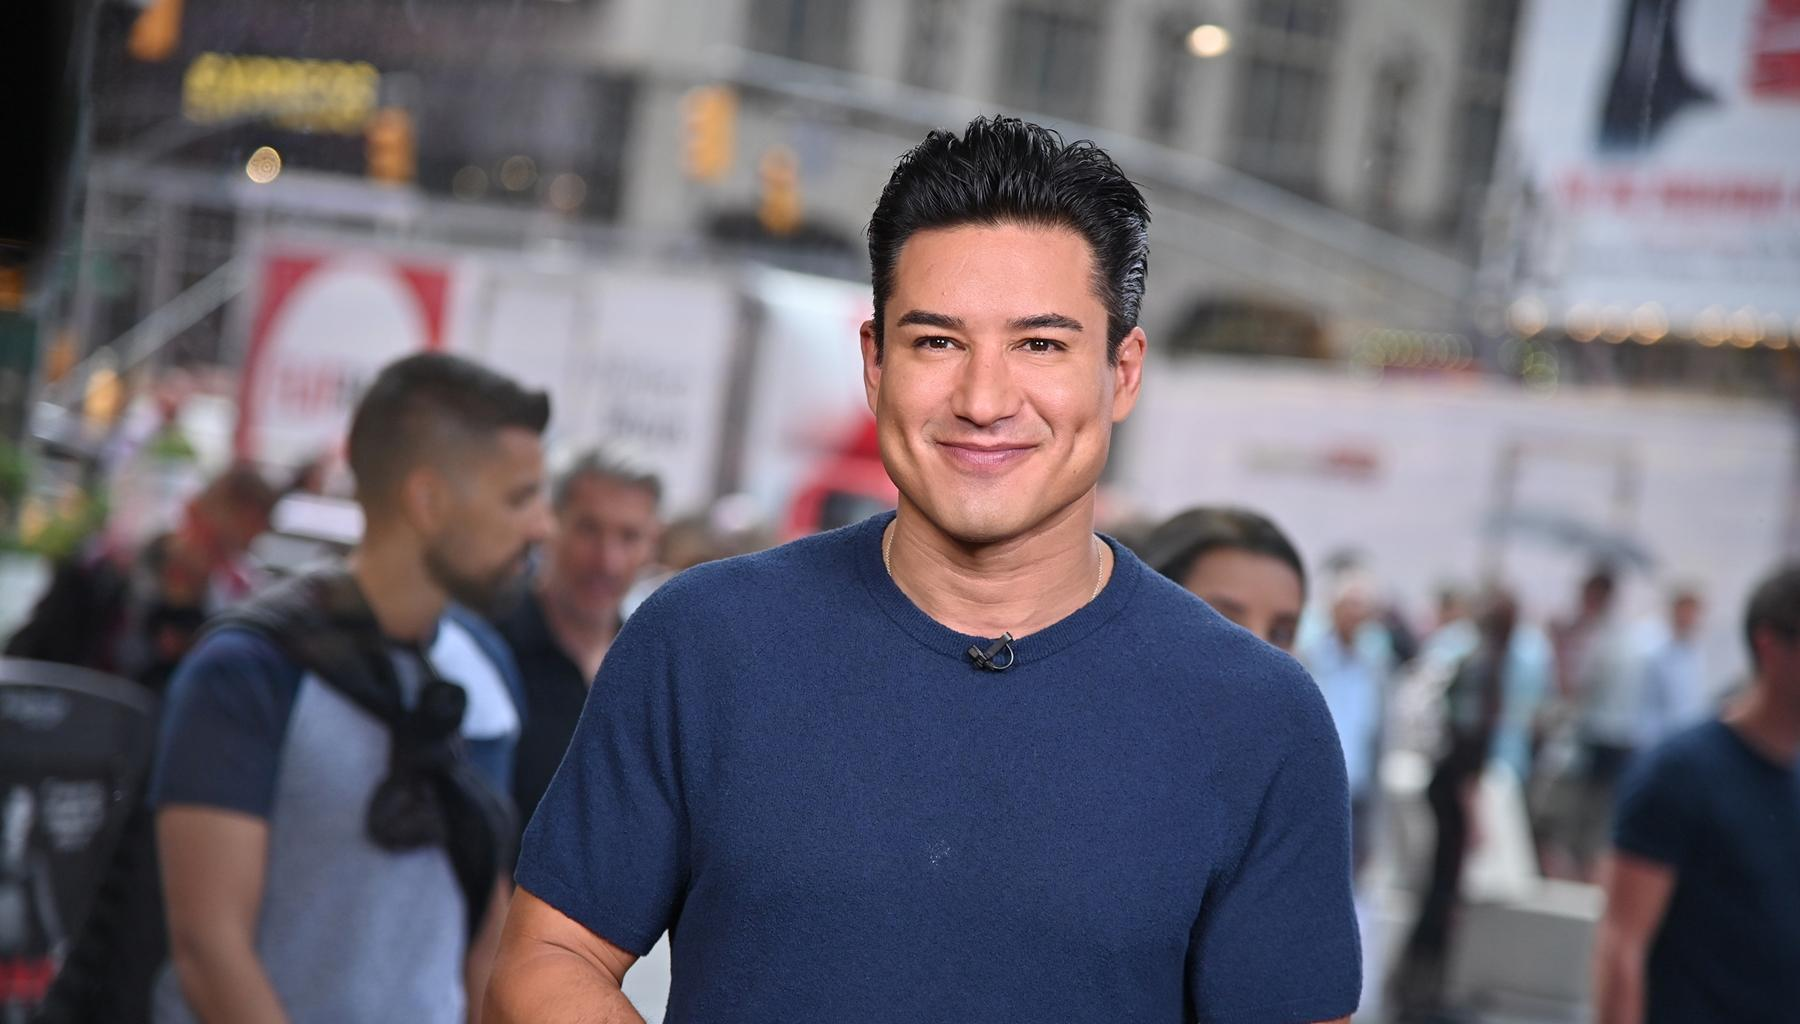 Mario Lopez Gets Some Support After Speaking Out Against Letting Young Children Choose Genders